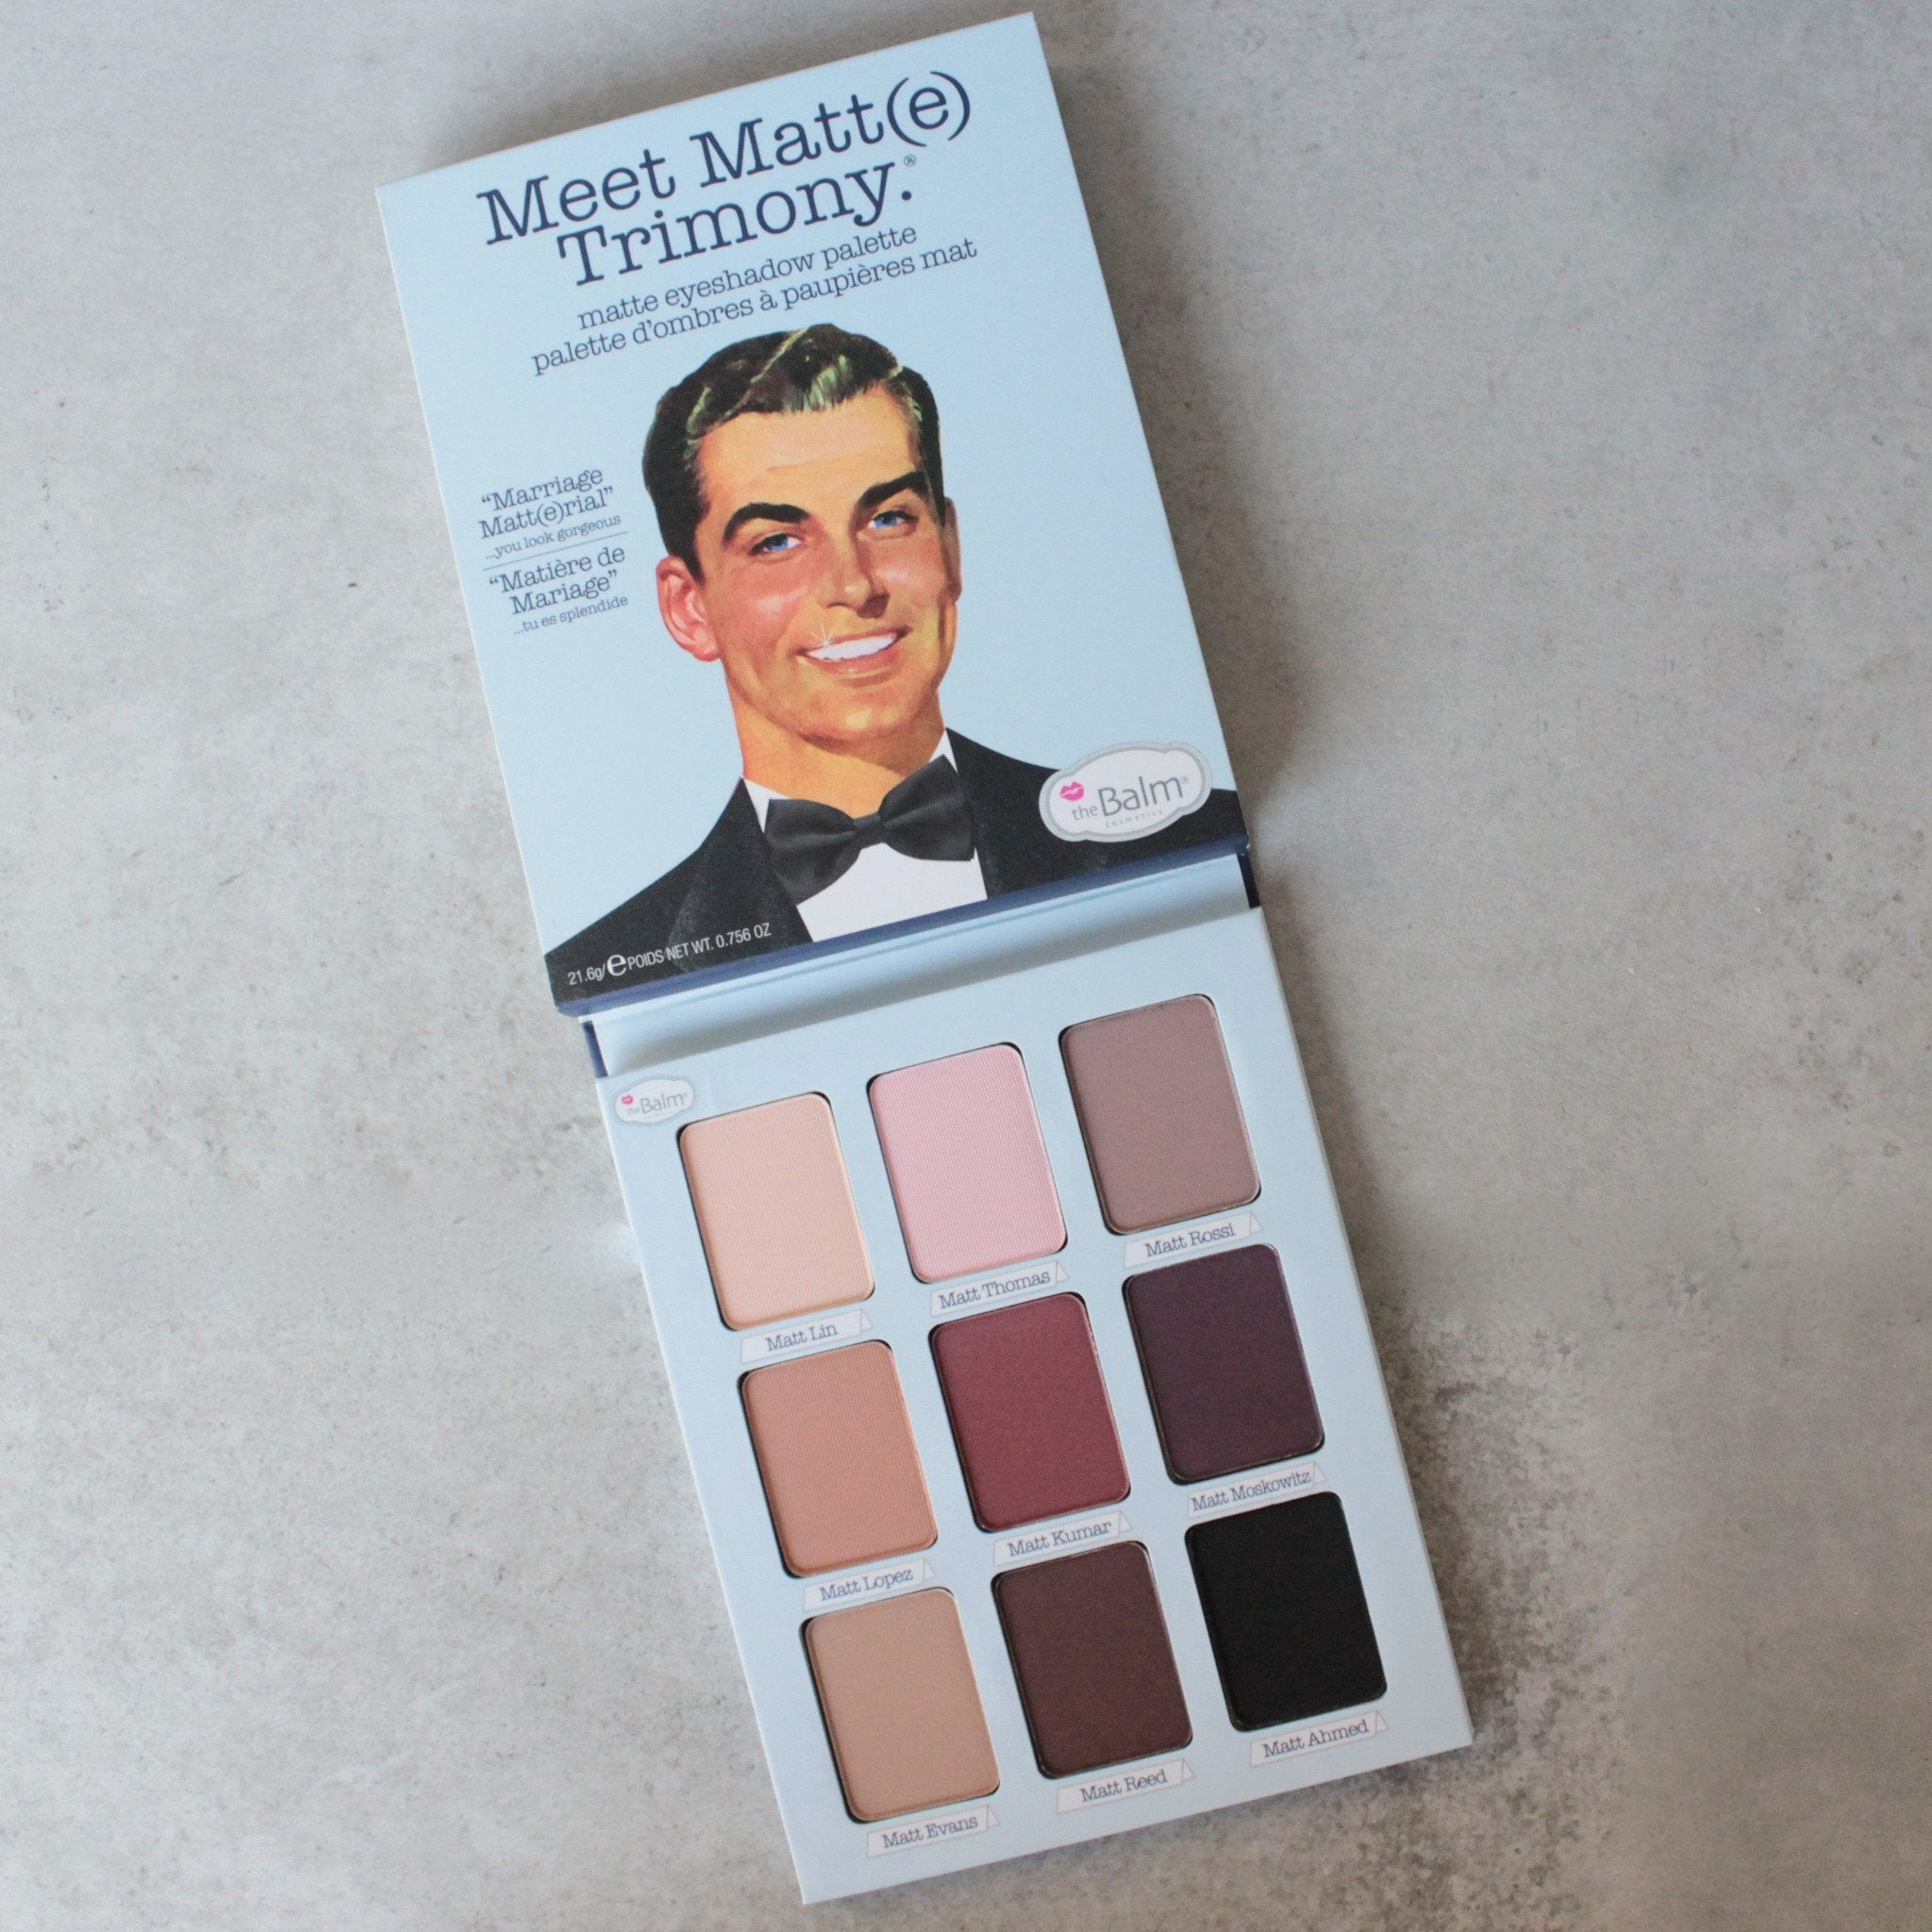 theBalm cosmetics - Meet Matte Trimony Eyeshadow Palette - shophearts - 1